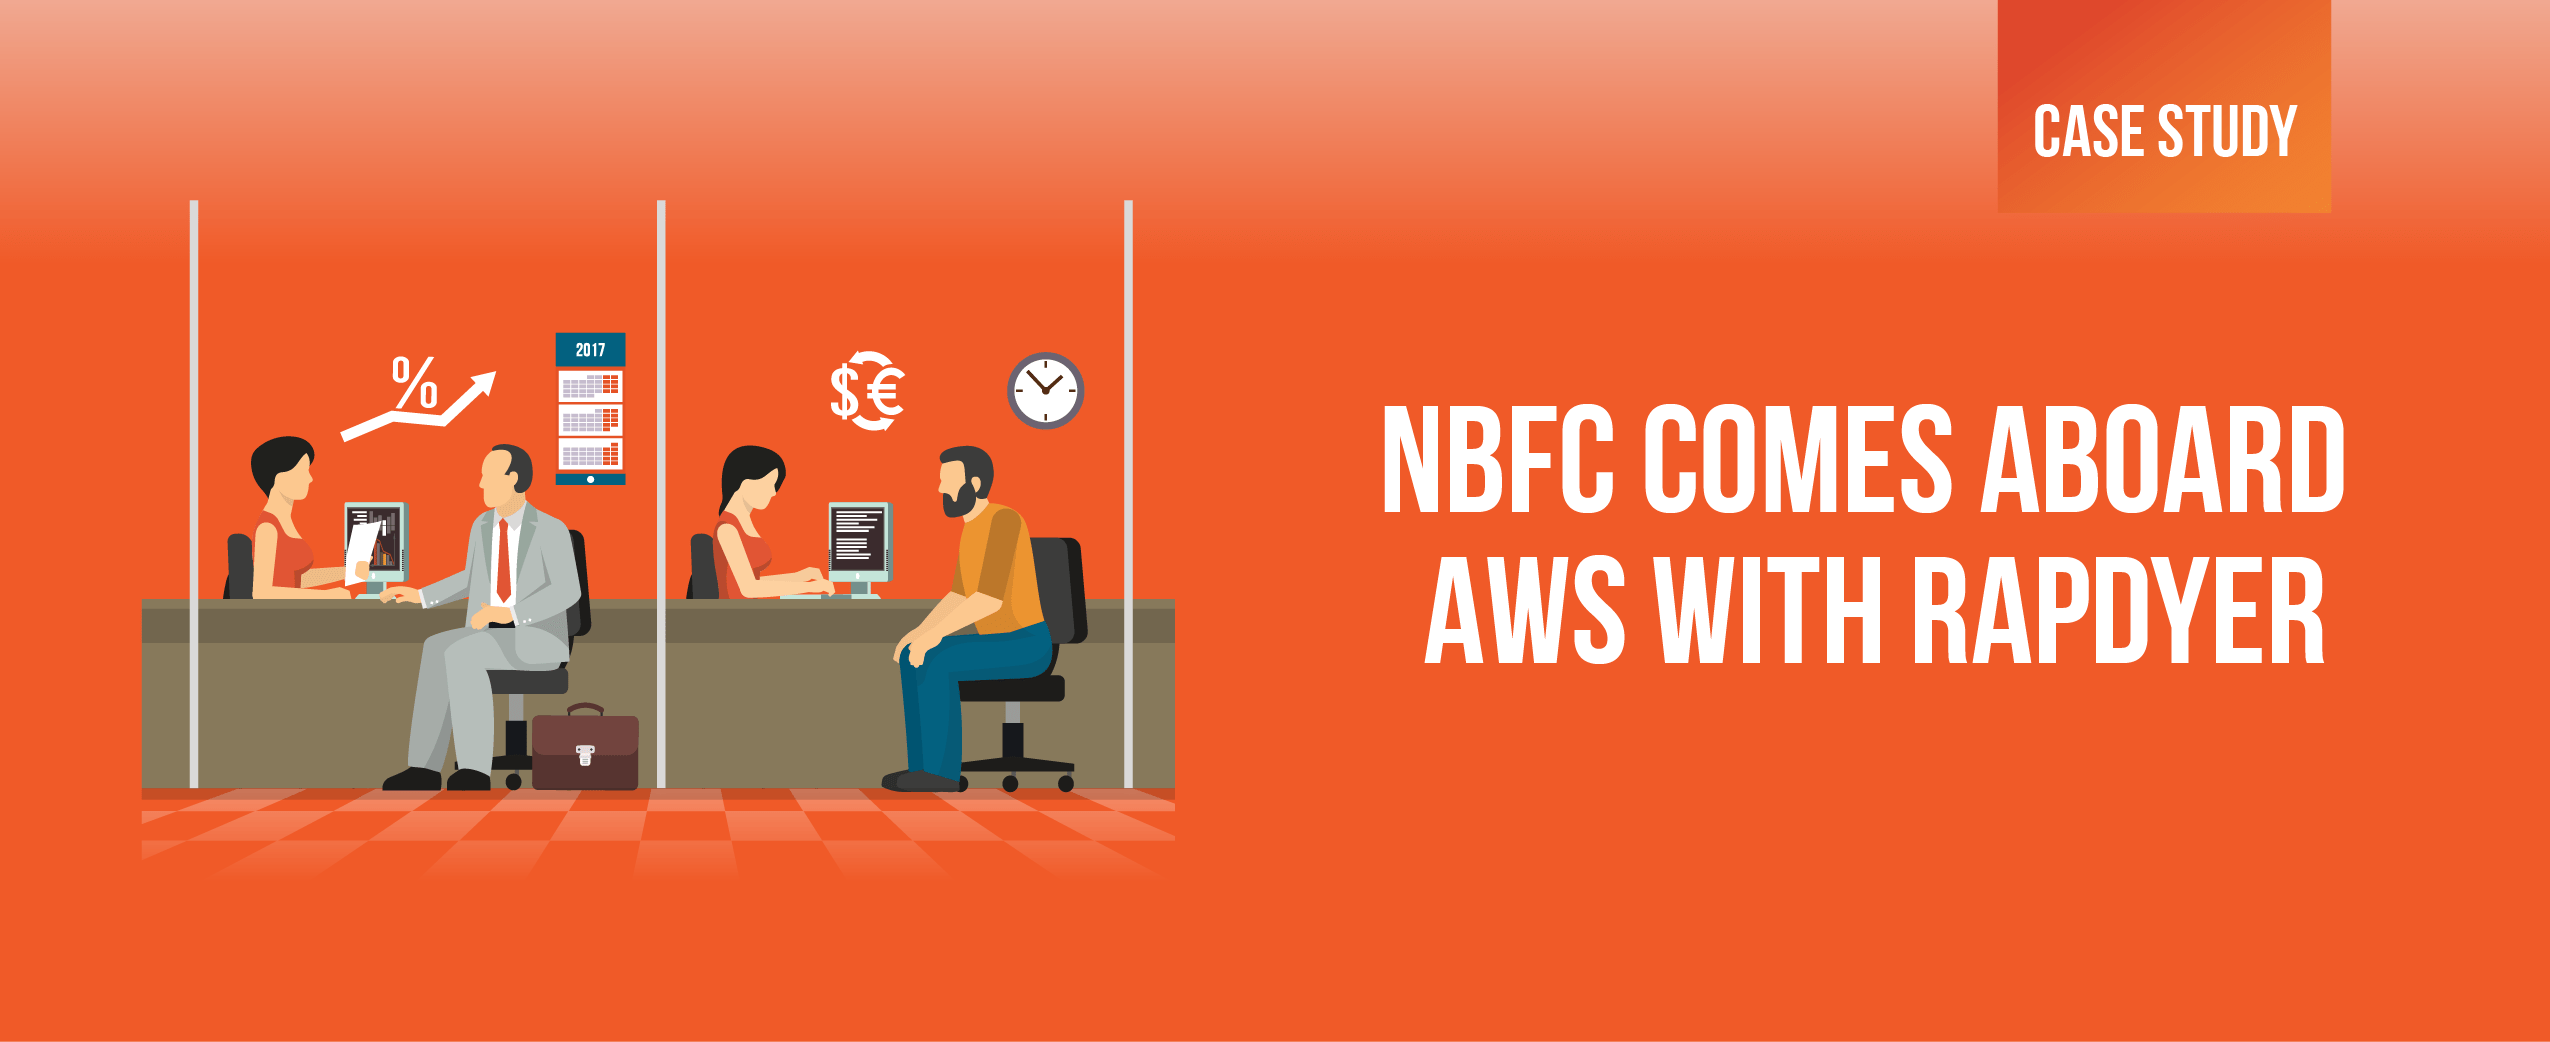 LoanTap Cas Study 01 - NBFC comes aboard AWS with Rapdyer